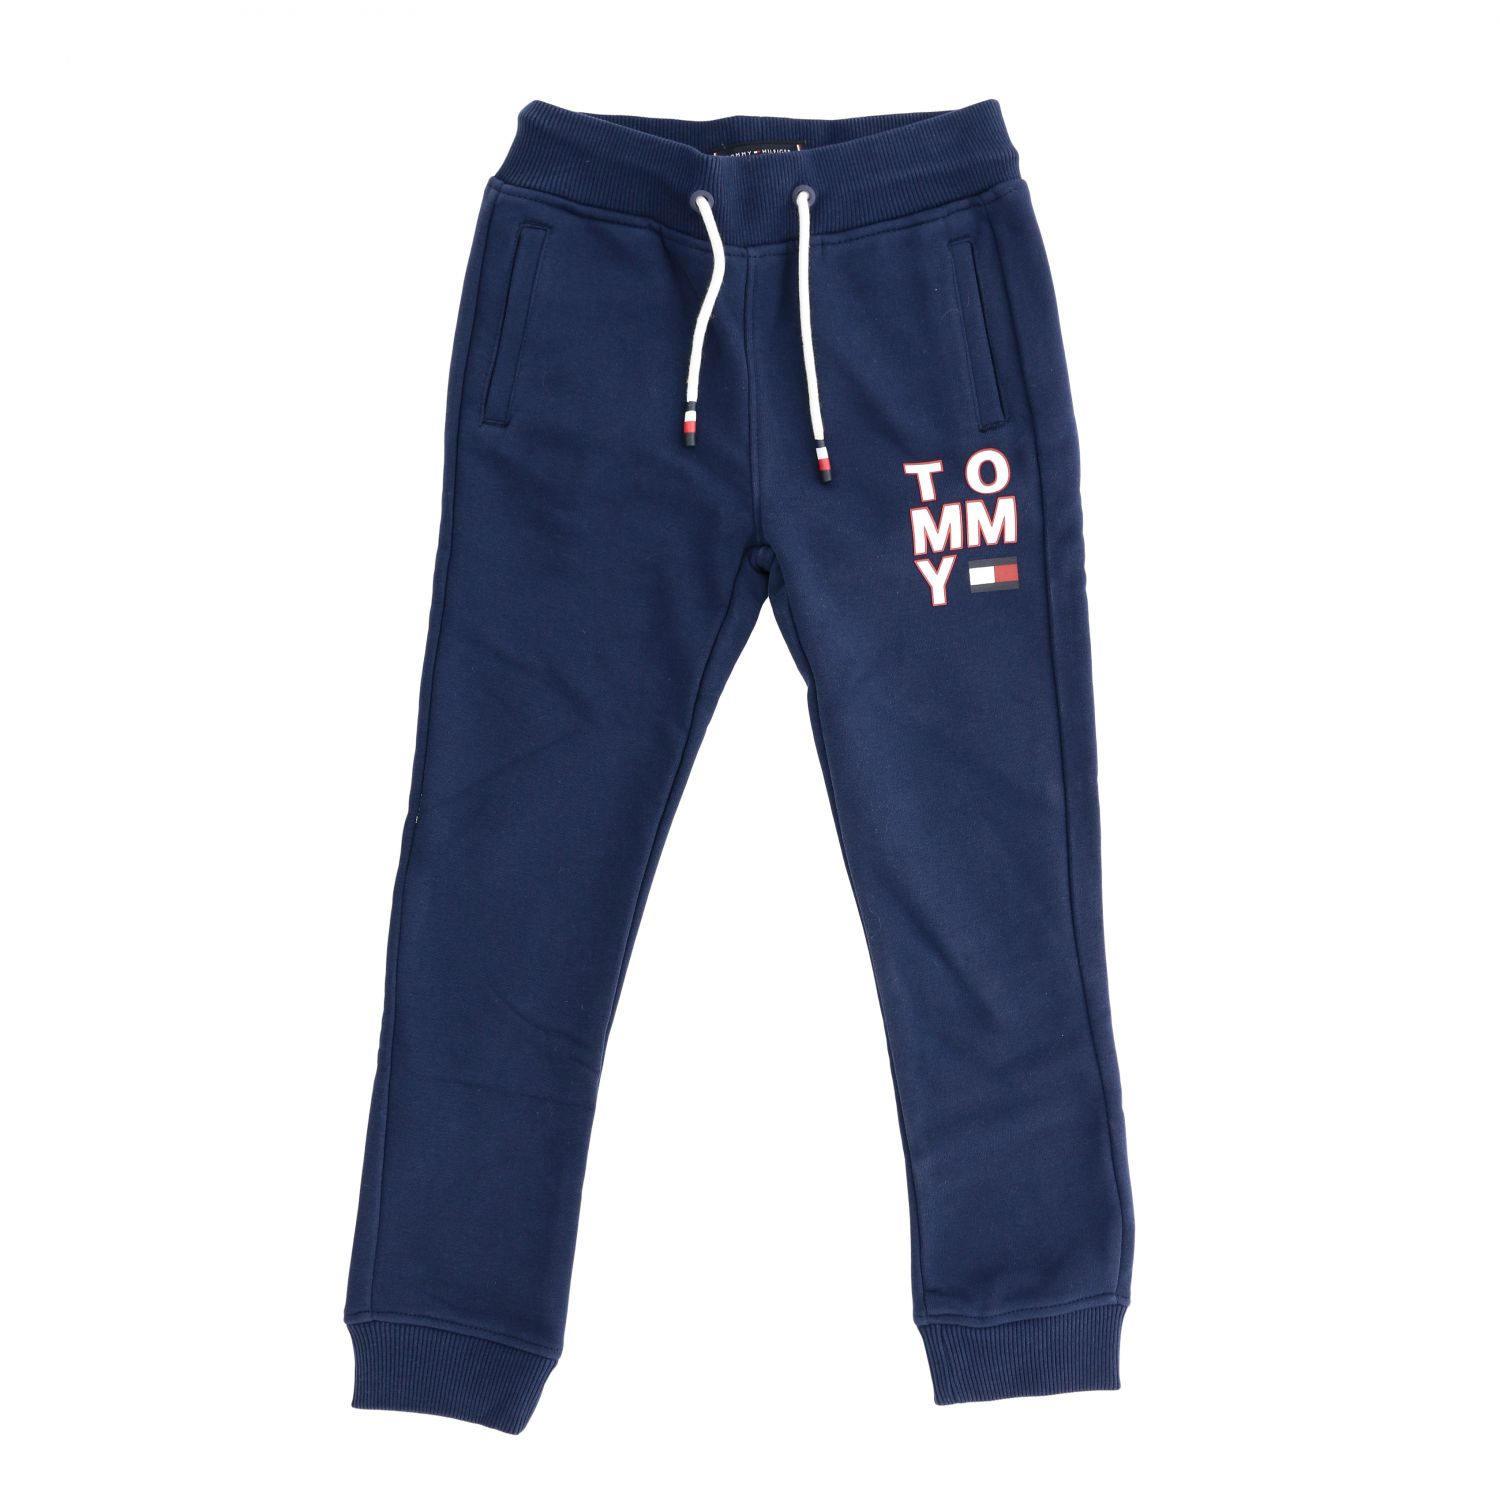 Tommy Hilfiger jogging trousers with logo black 1